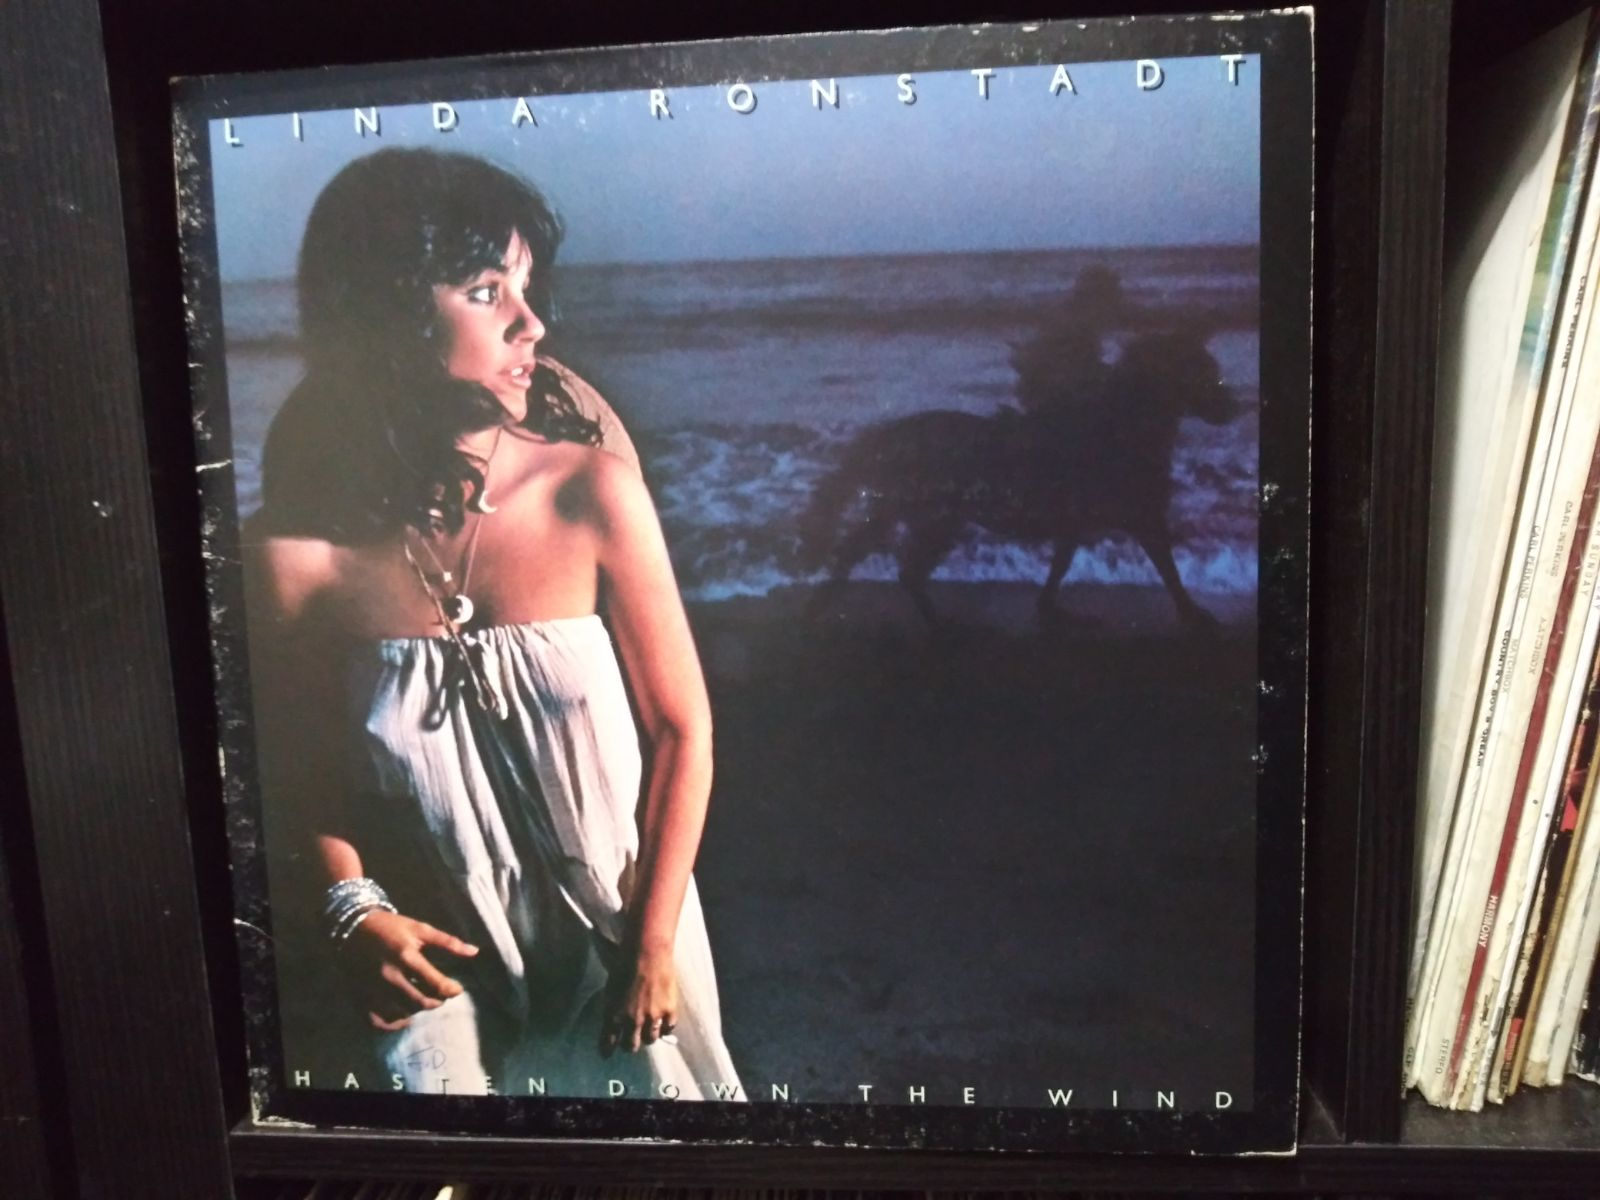 Linda Ronstadt Hasten down vinyl record